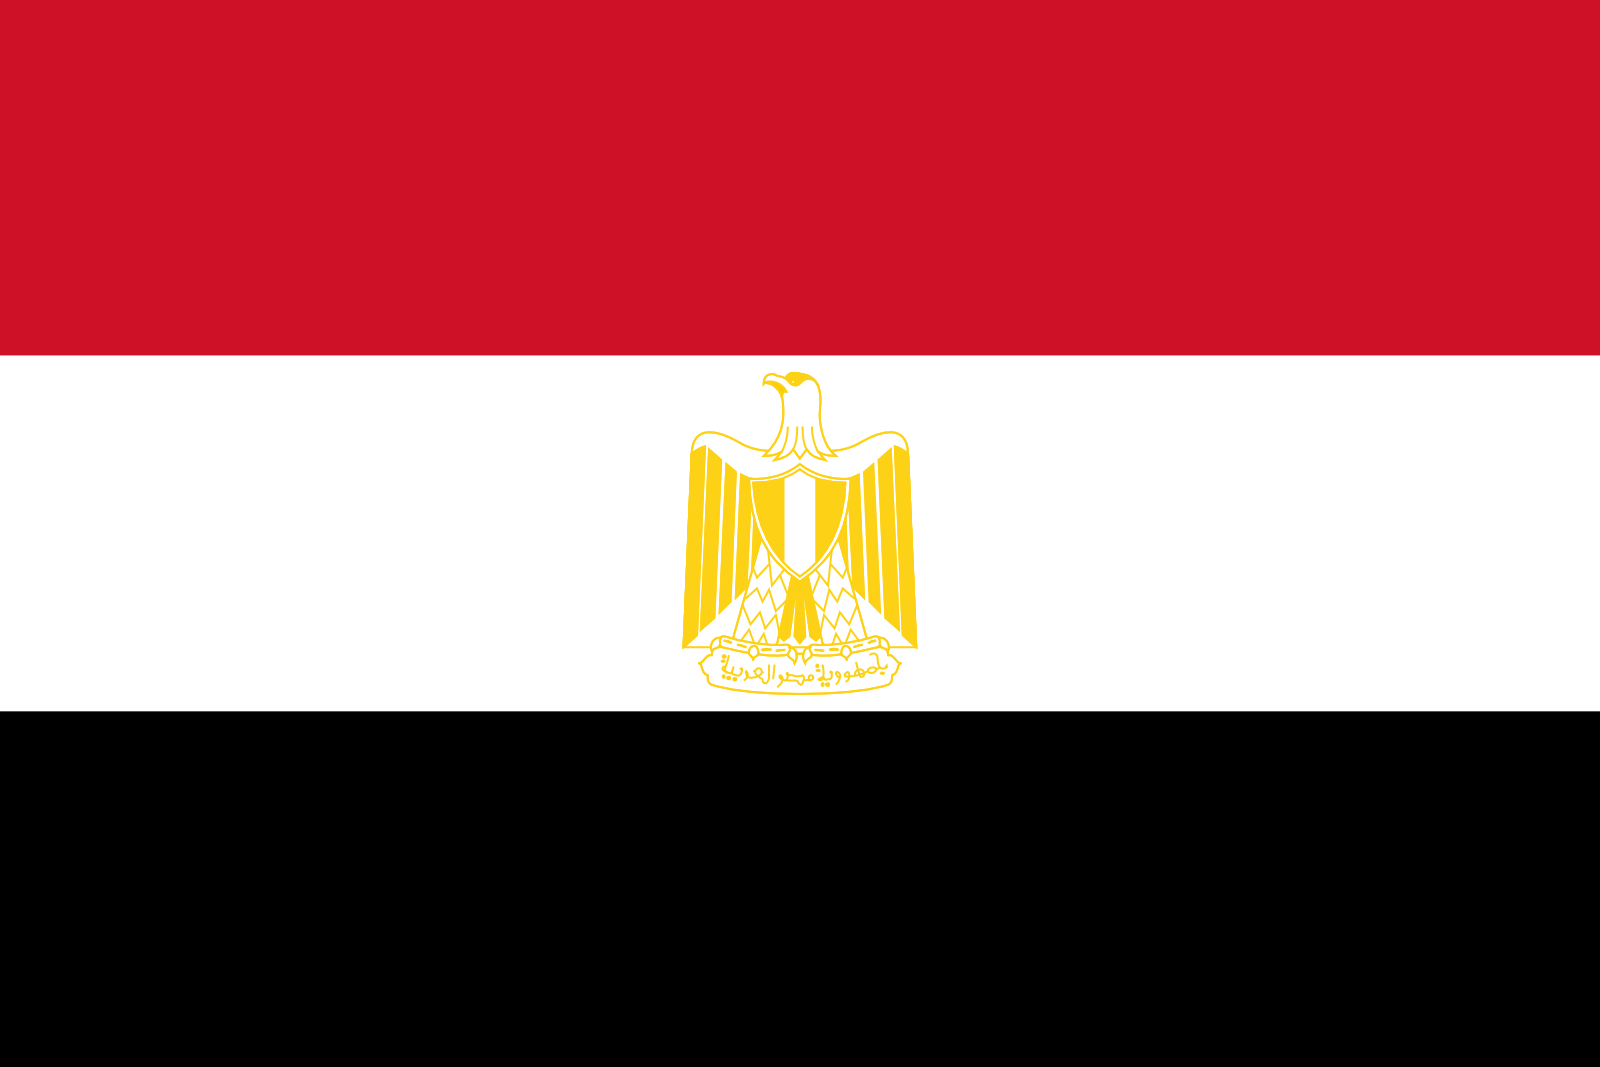 1600x1067 Egypt Filter - For Facebook profile pictures, Twitter profile ...